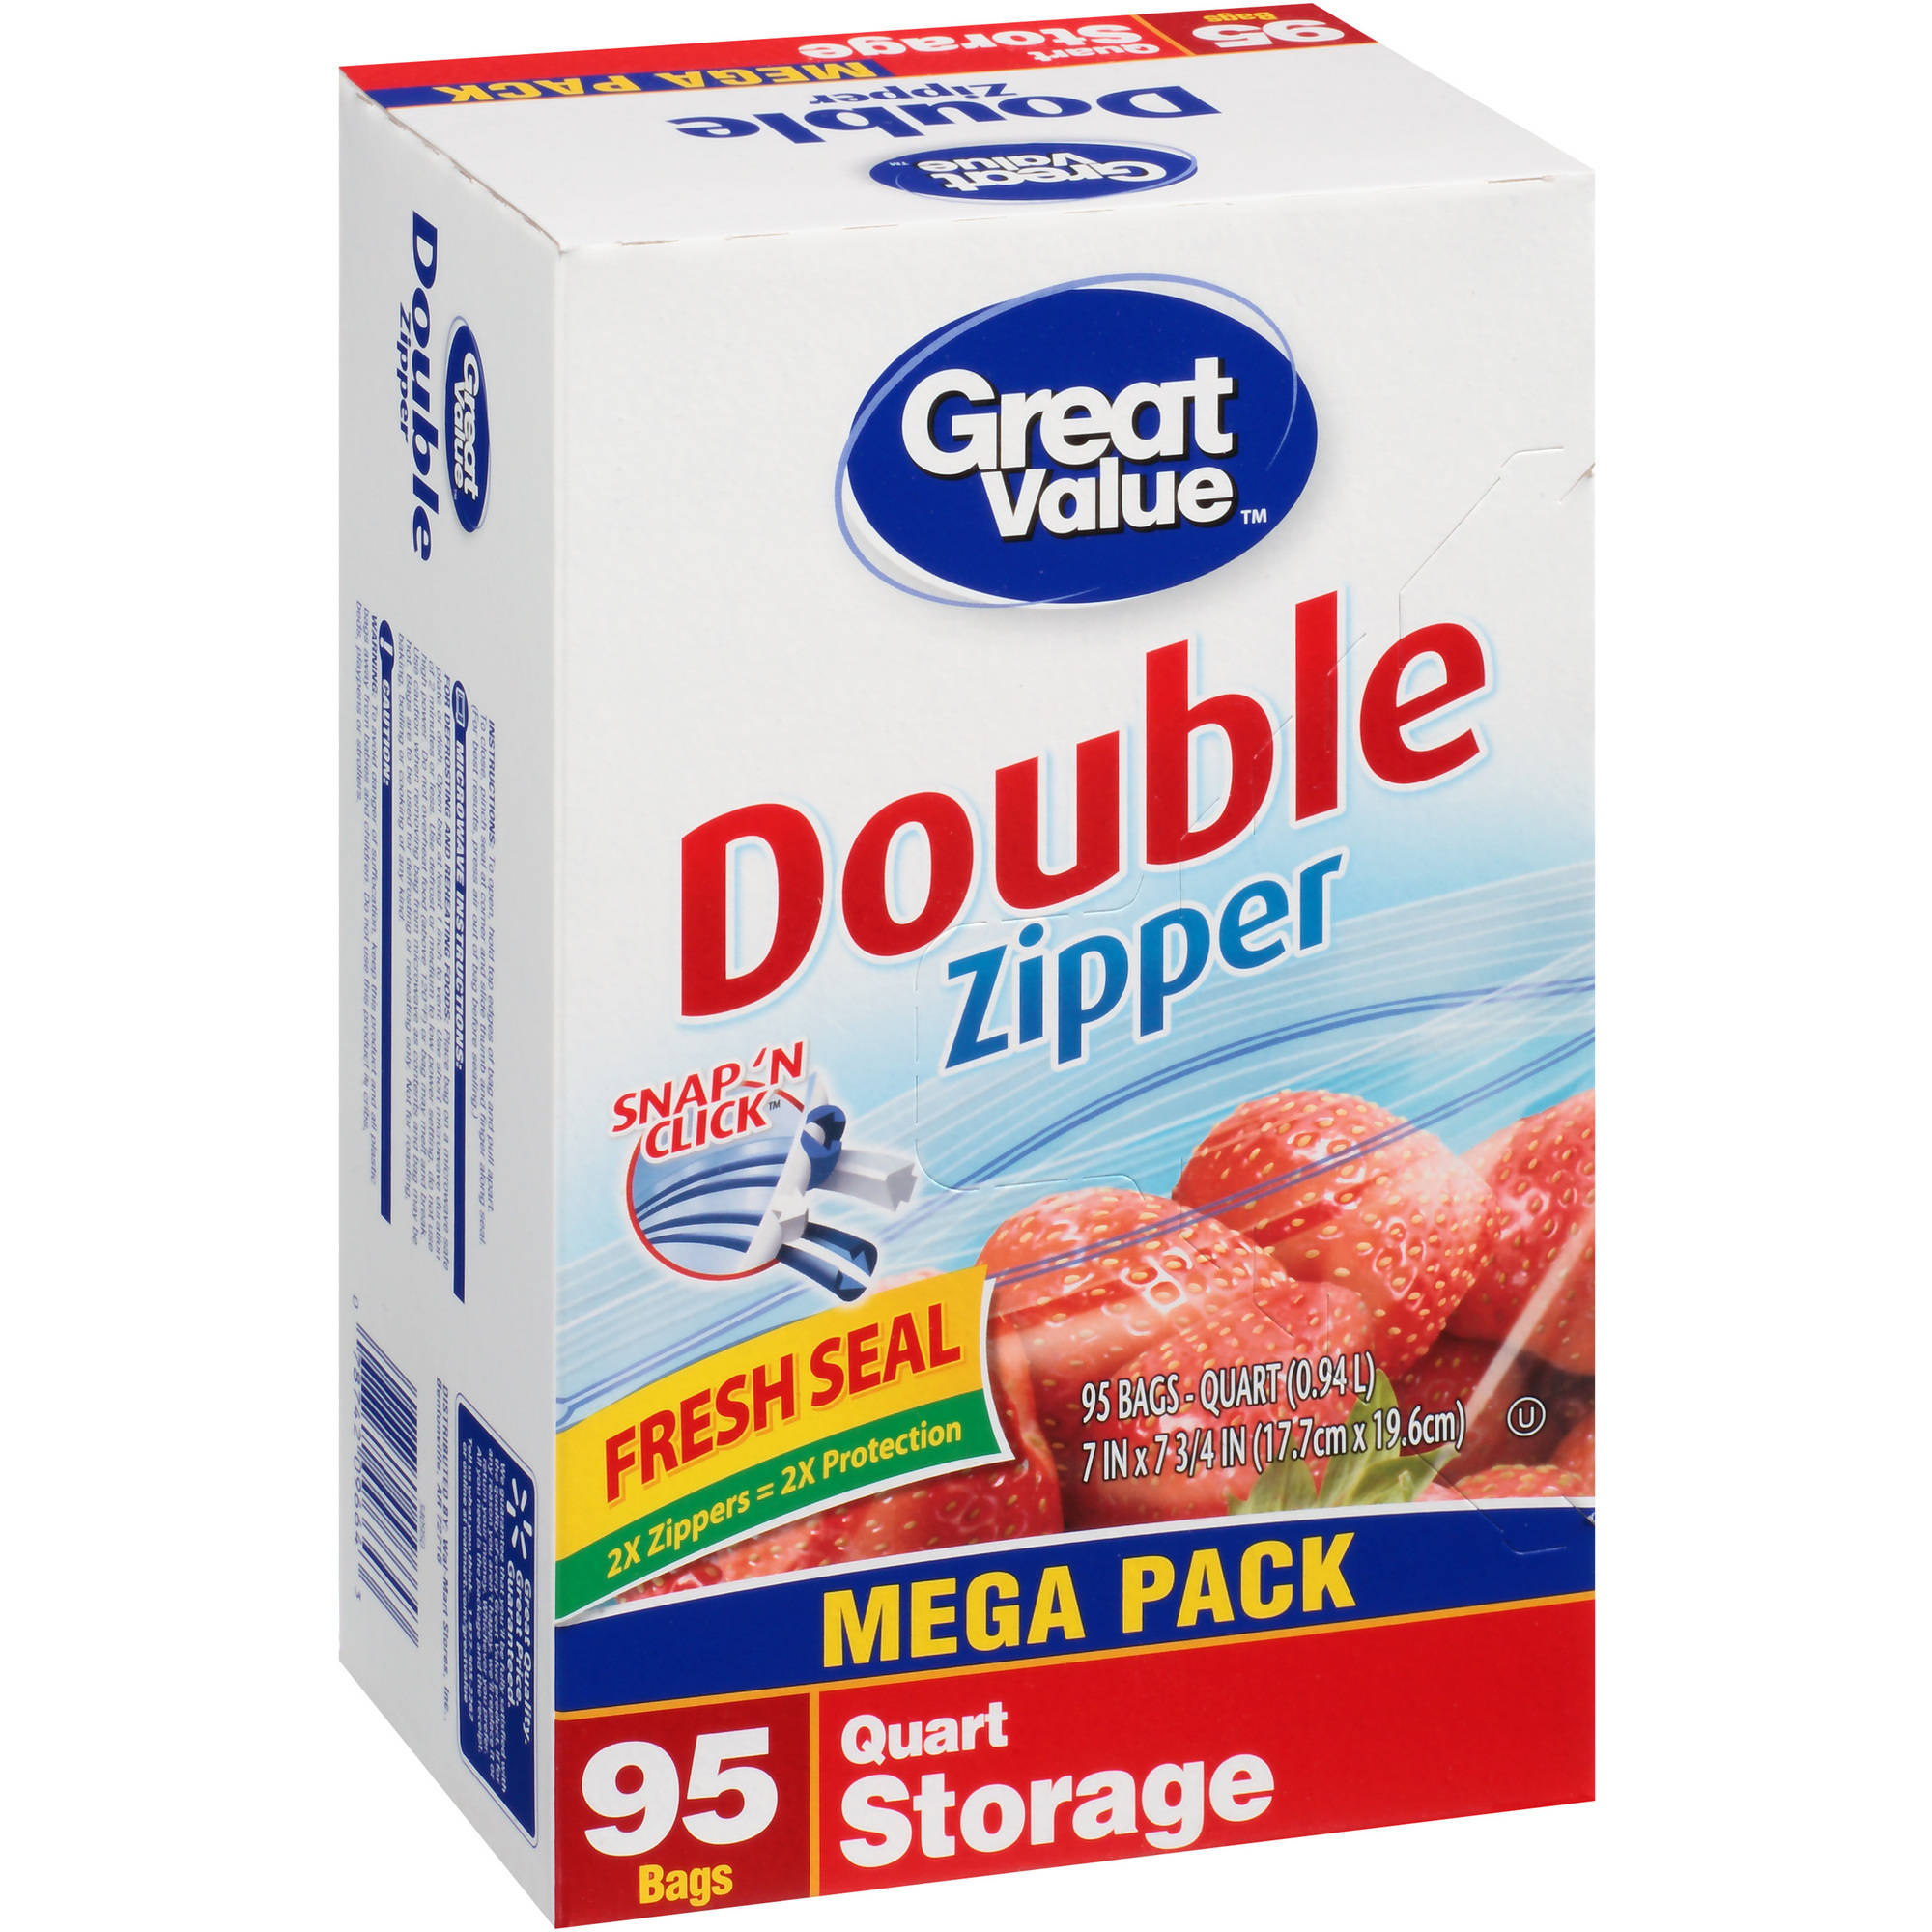 Great Value Double Zipper Quart Size Storage Bags, 95 count